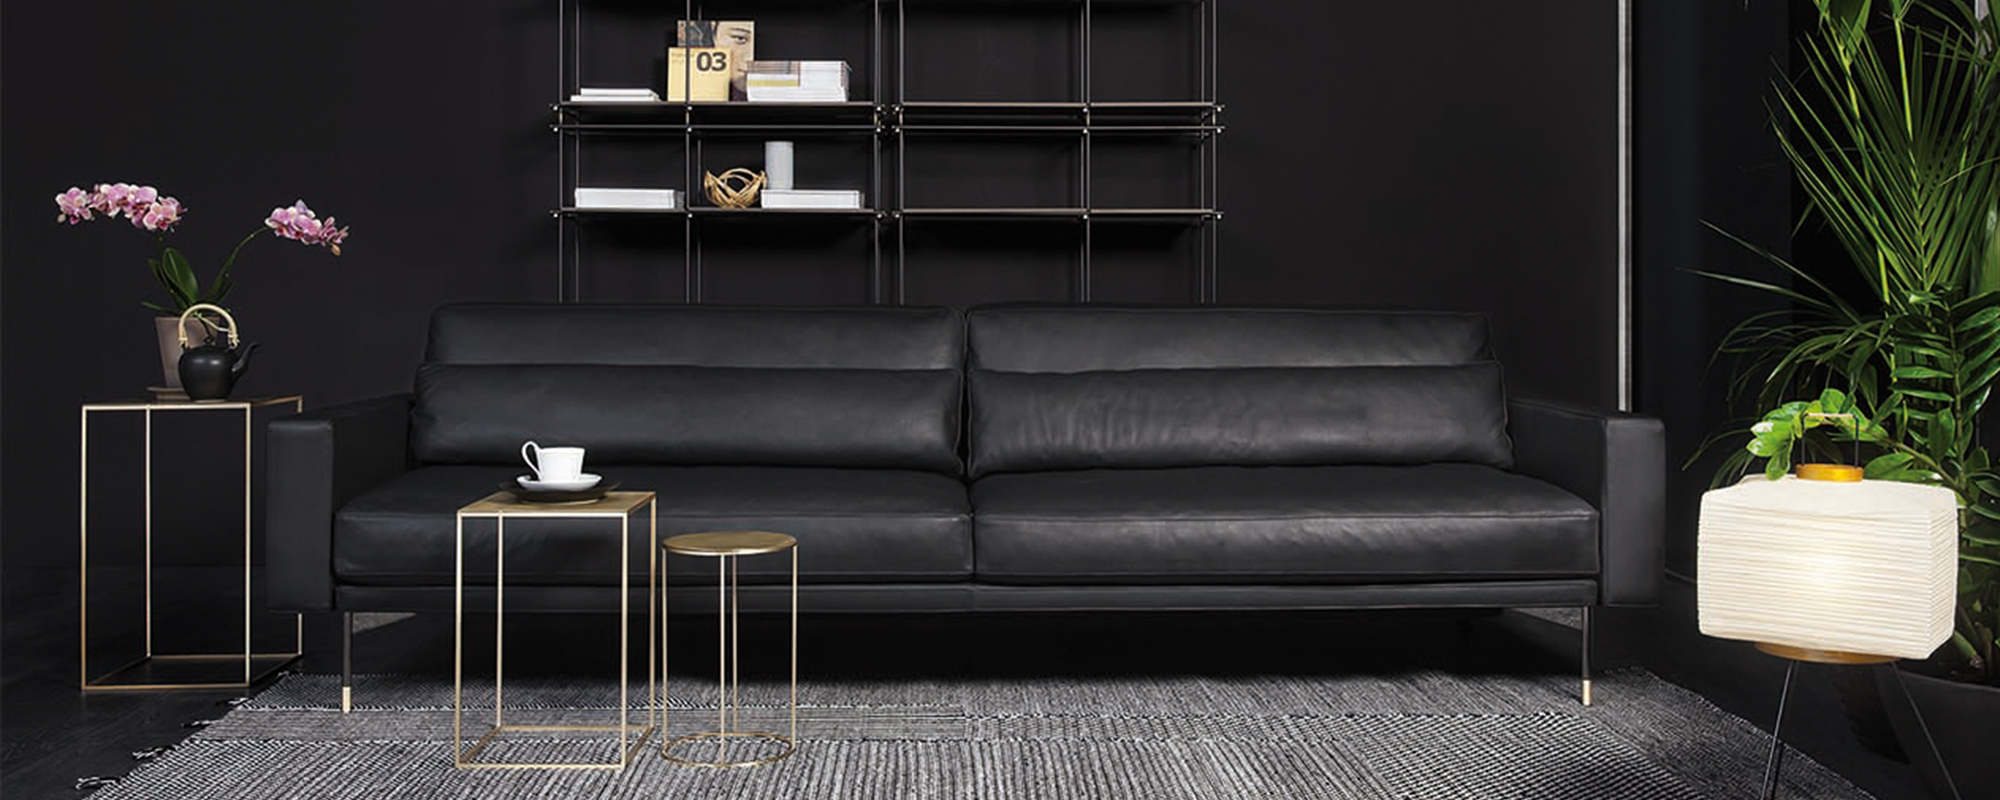 Home Contemporary Luxury Furniture Lighting And Interiors In New York